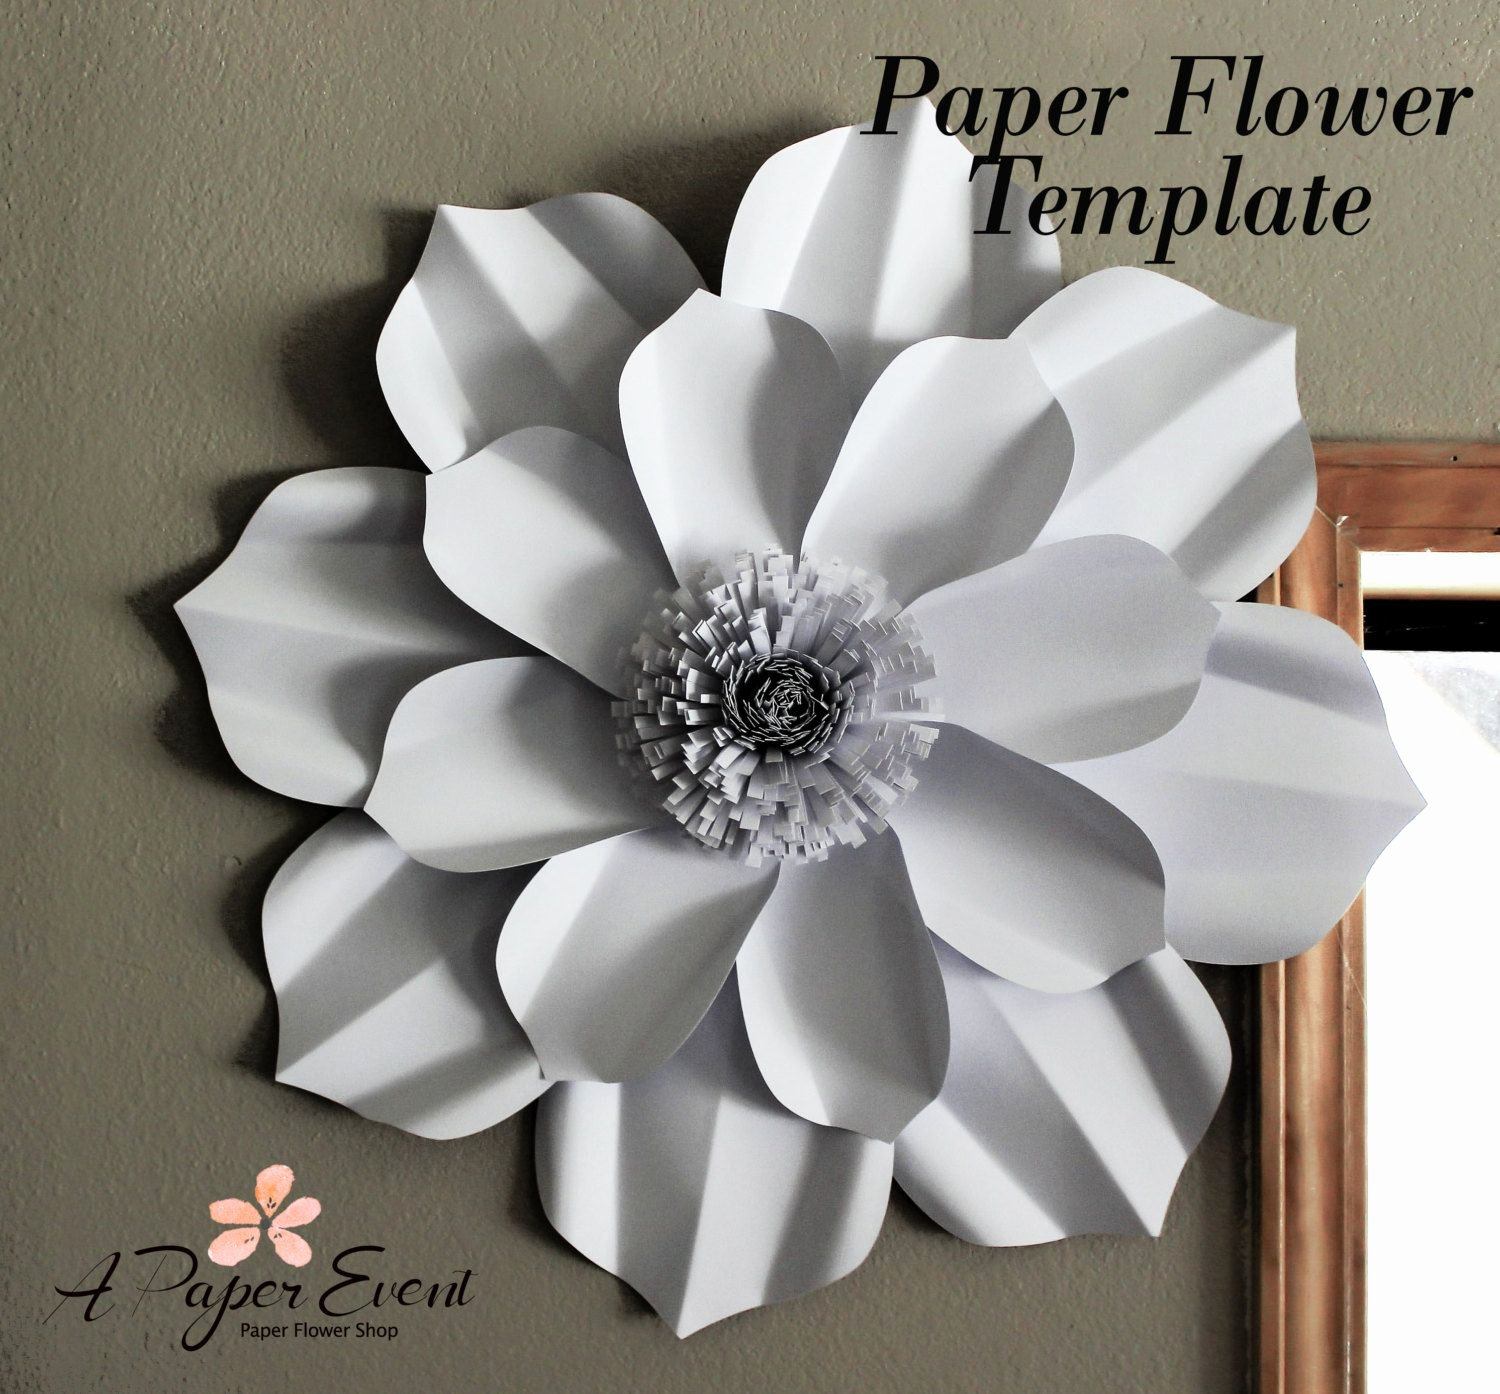 Paper Flower Backdrop Template Lovely Paper Flower Template Diy Paper Flower Diy Backdrop